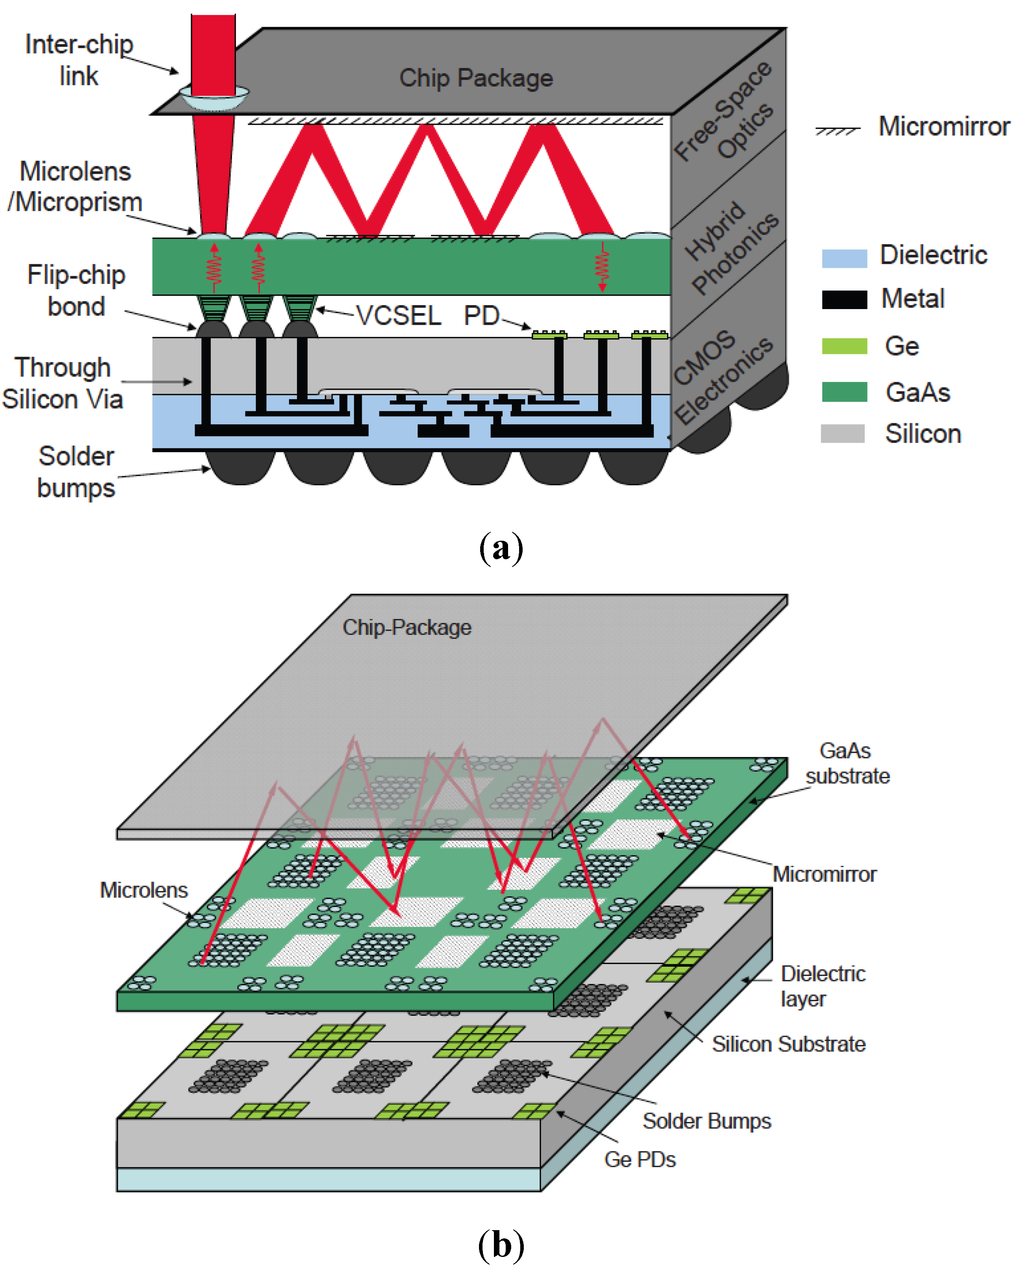 Photonics Special Issue Hybrid And Heterogeneous Technologies In Integrated Circuits History Quality For Open Accessreview Transfer Printed Nanomembranes Heterogeneously Membrane